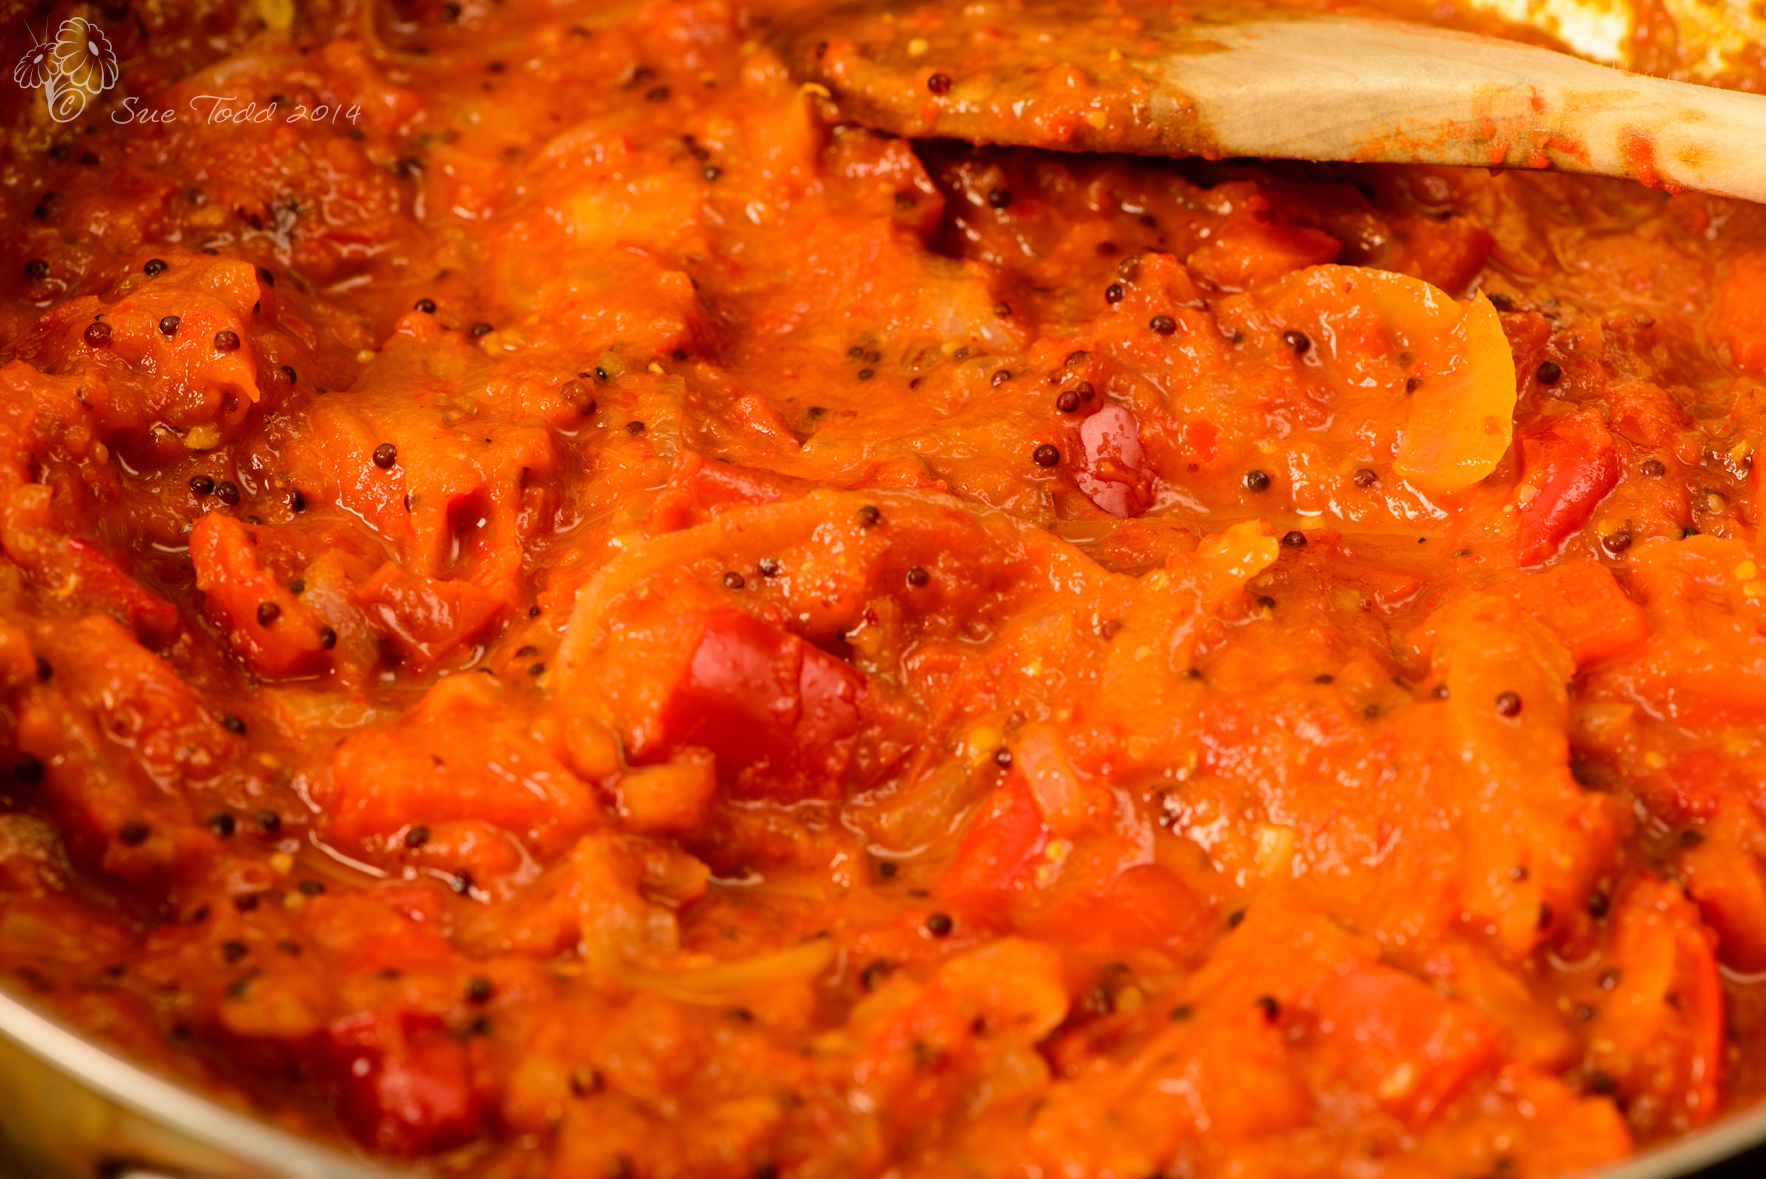 Tomato and Pepper Ketchup © Sue Todd 2014